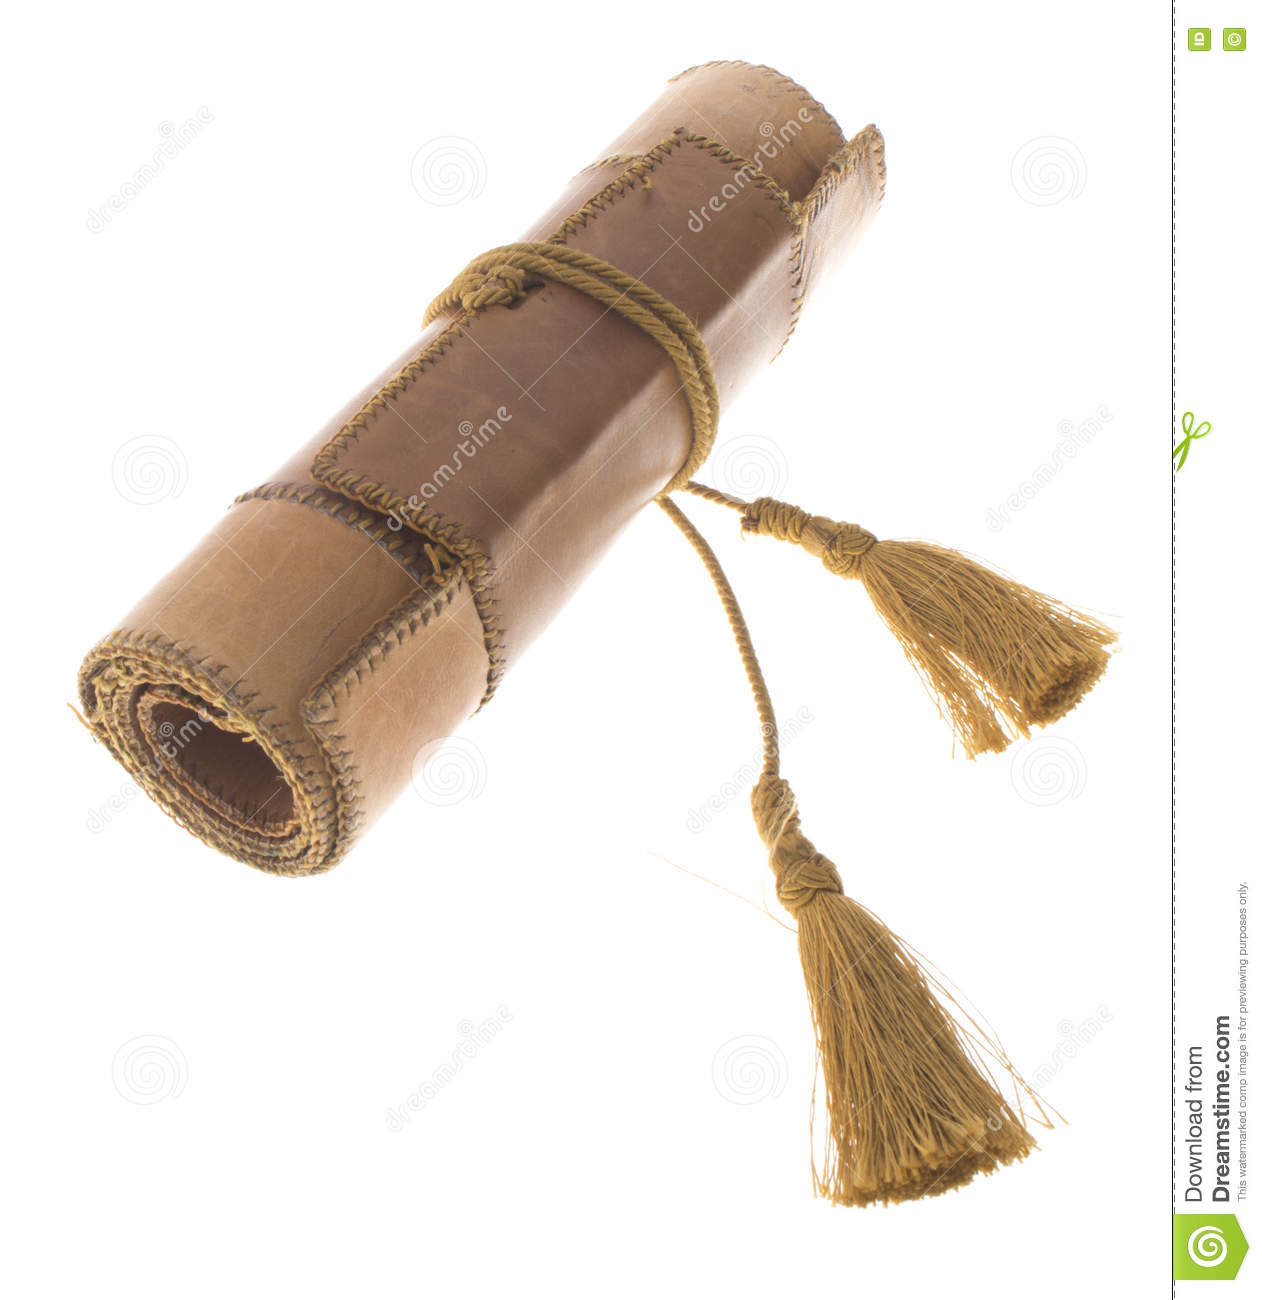 Ancient Scroll: Ancient Scroll Stock Photo. Image Of Paper, Effects